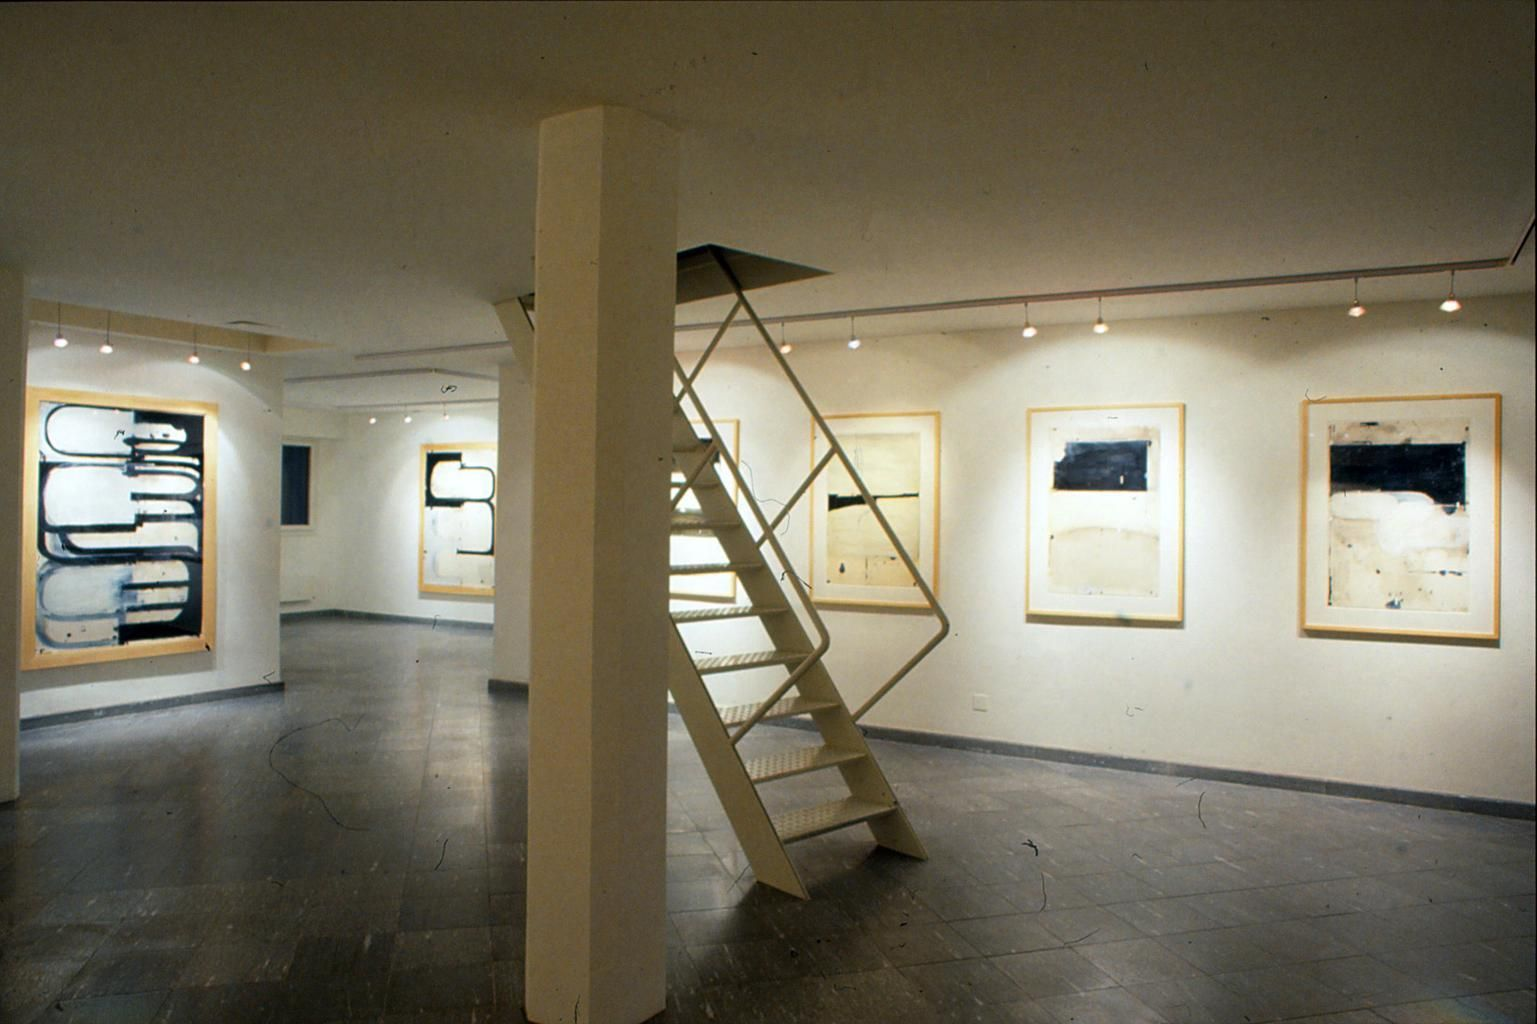 Installation View, John Millei: Drawings, Marc Jancou, Zurich, 1991